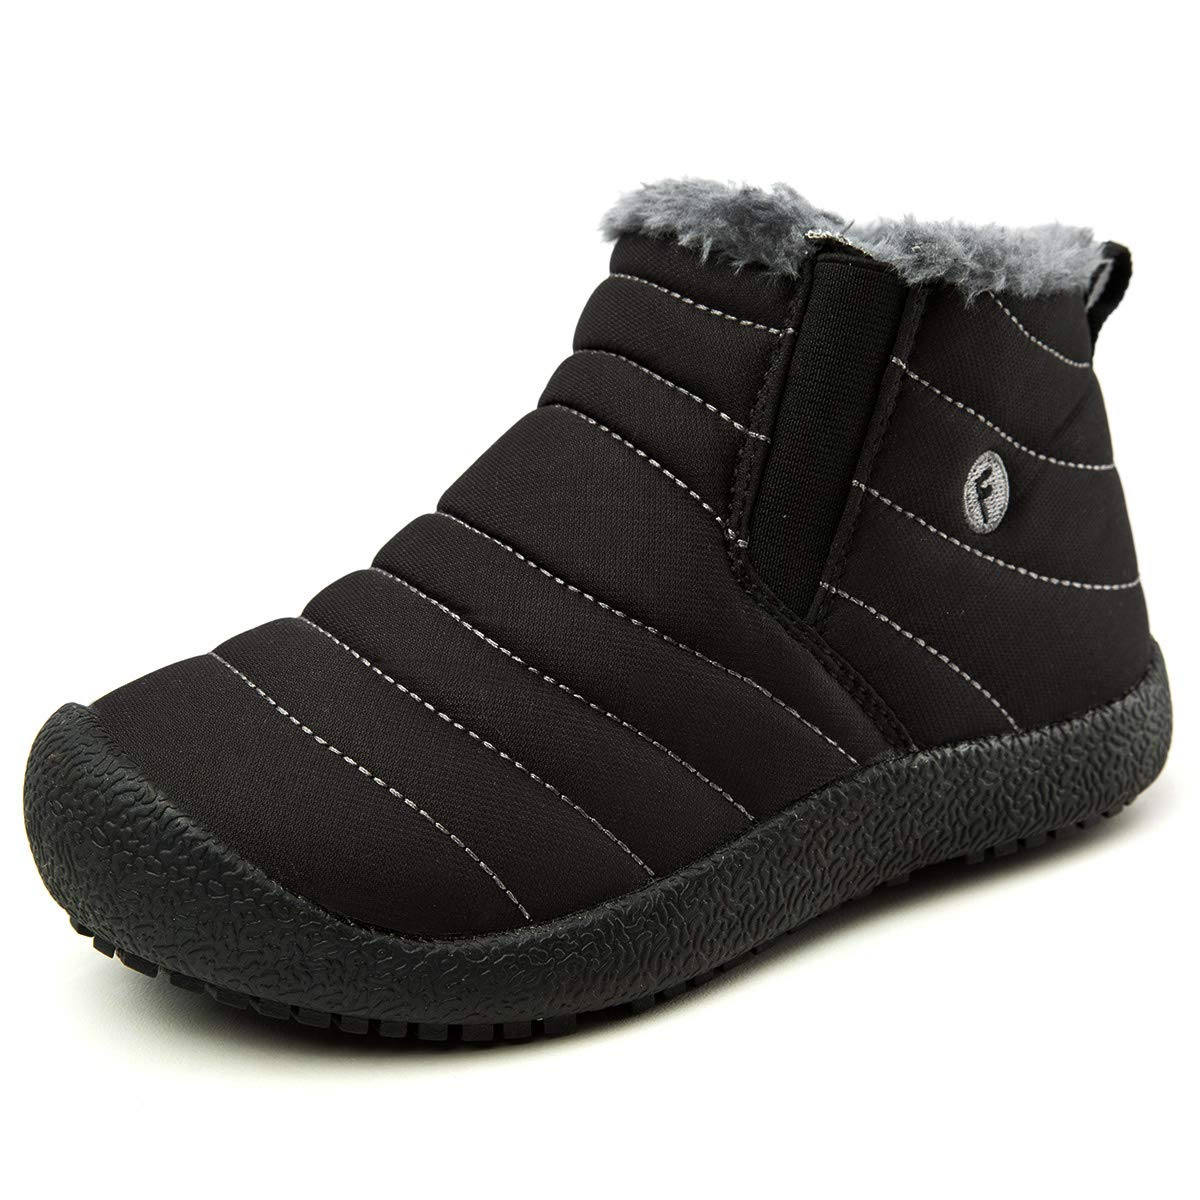 YIRUIYA Boys Girls Winter Snow Boot Fur Lined Ankle Boots